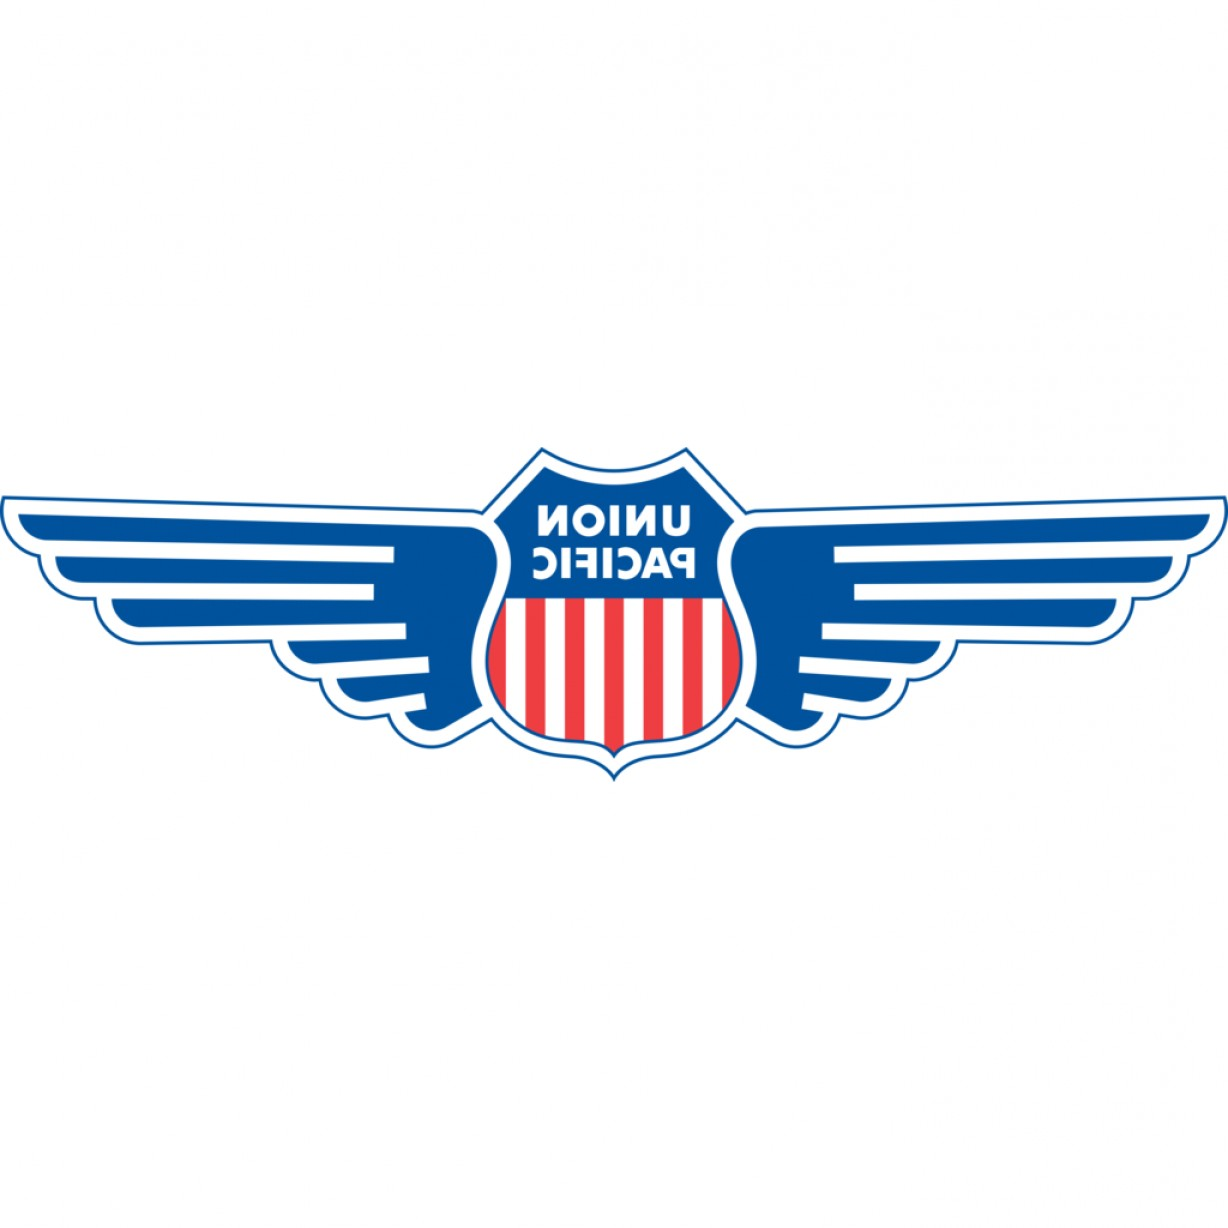 Detroit Red Wing Logo Vector: Union Pacific Diesel Logo With Wings